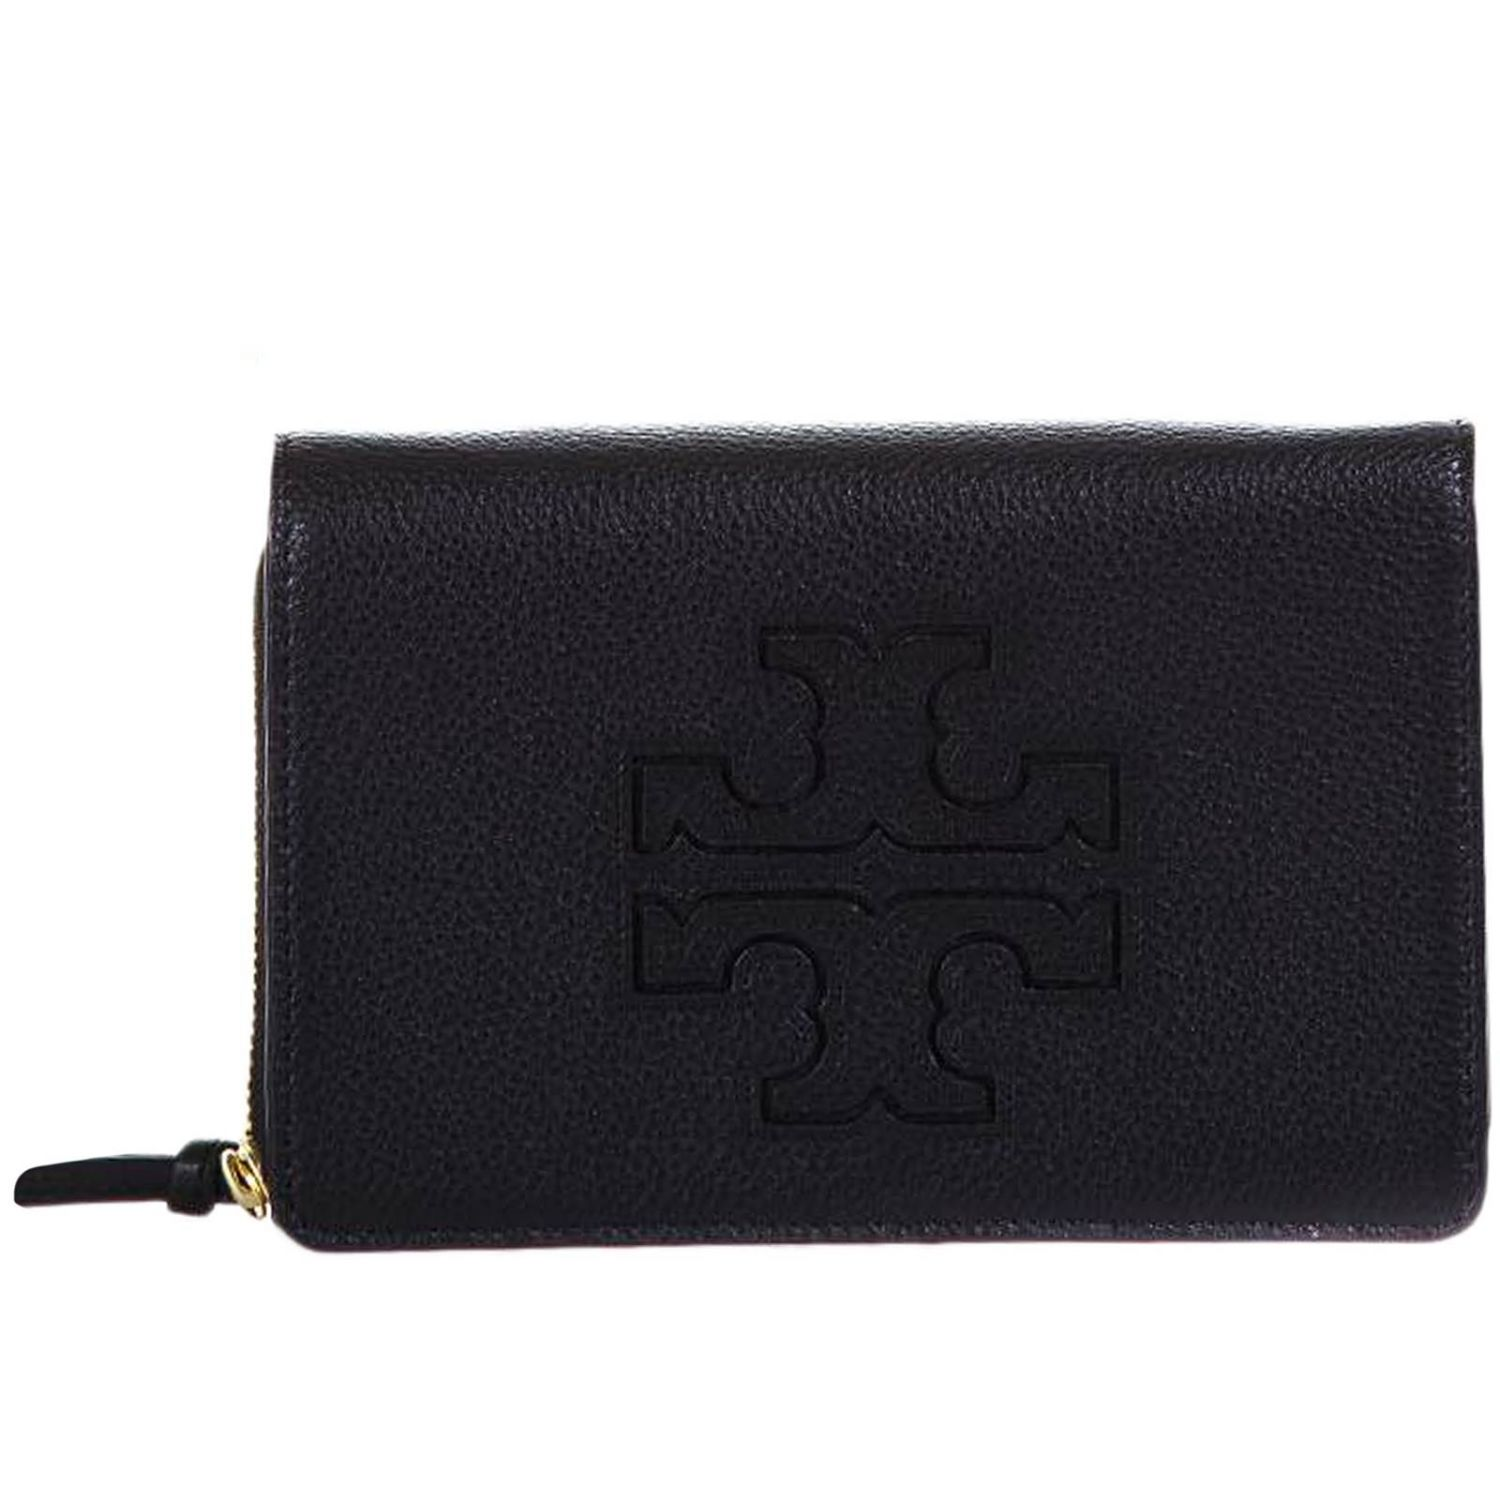 Handbag Handbag Women Tory Burch 8390485